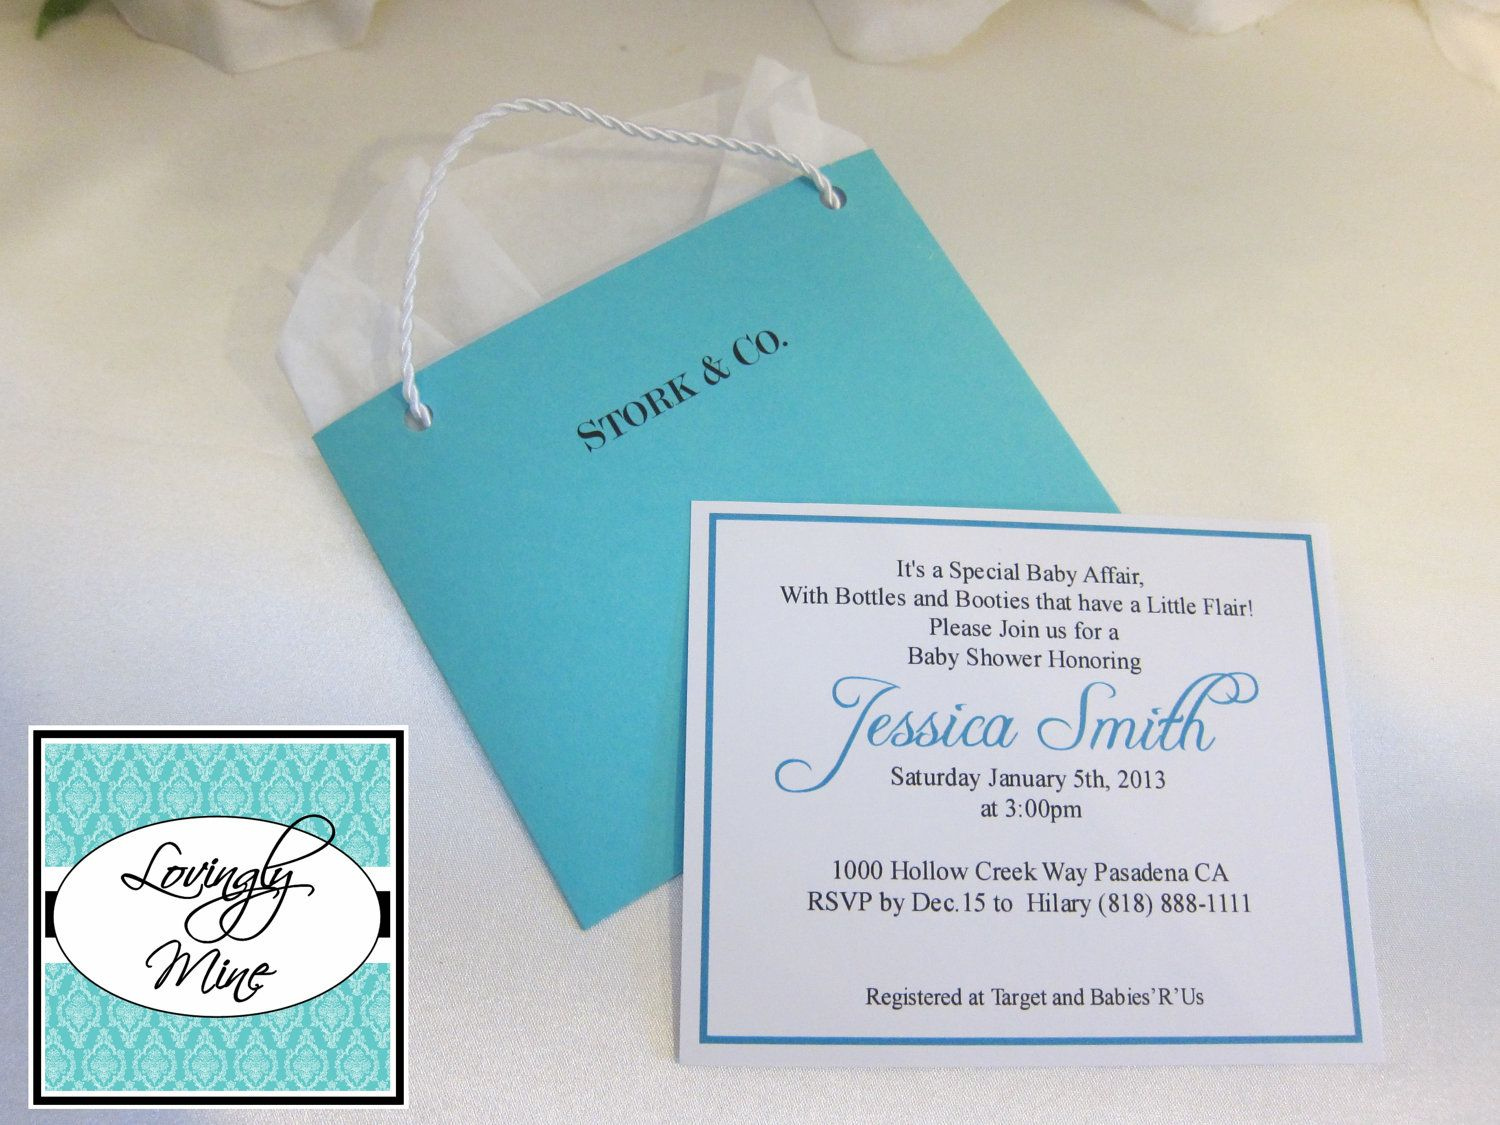 Baby Shower Invitations - Stork & Co. - Tiffany Co. Inspired Bag ...